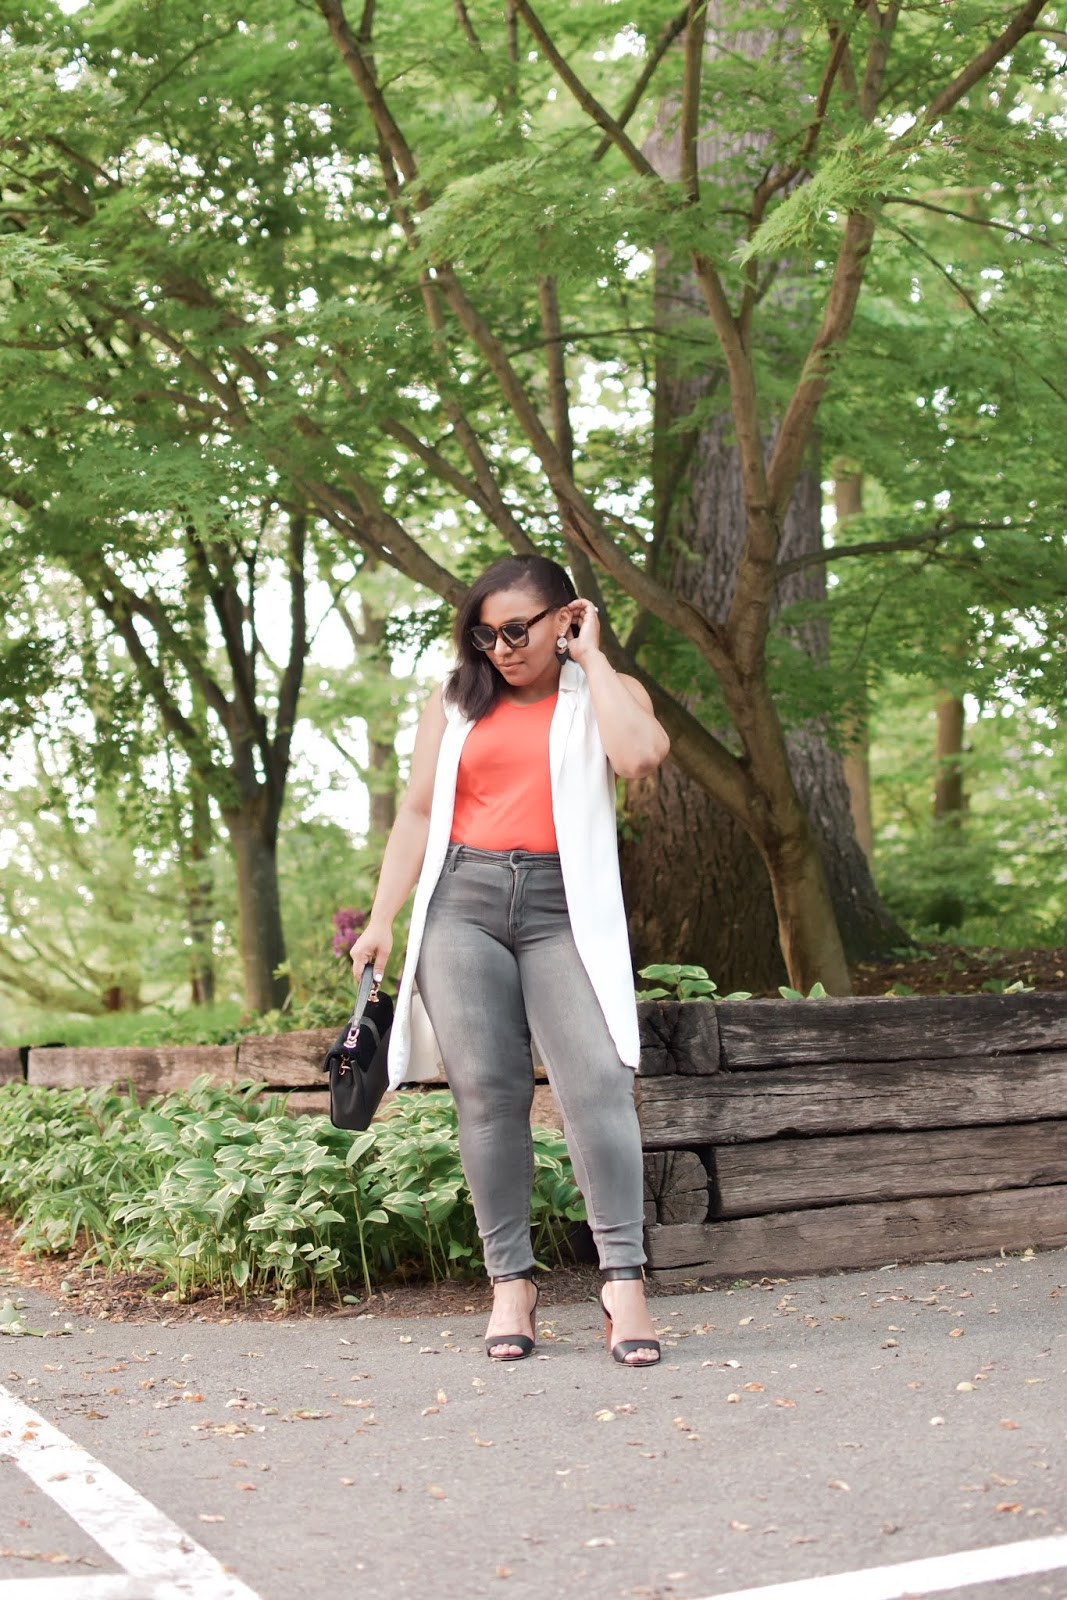 summer outfit ideas, summer styles, mom blogger, stylish moms, dc bloggers, summer vest, old navy jeans, old navy denim, armandhugon